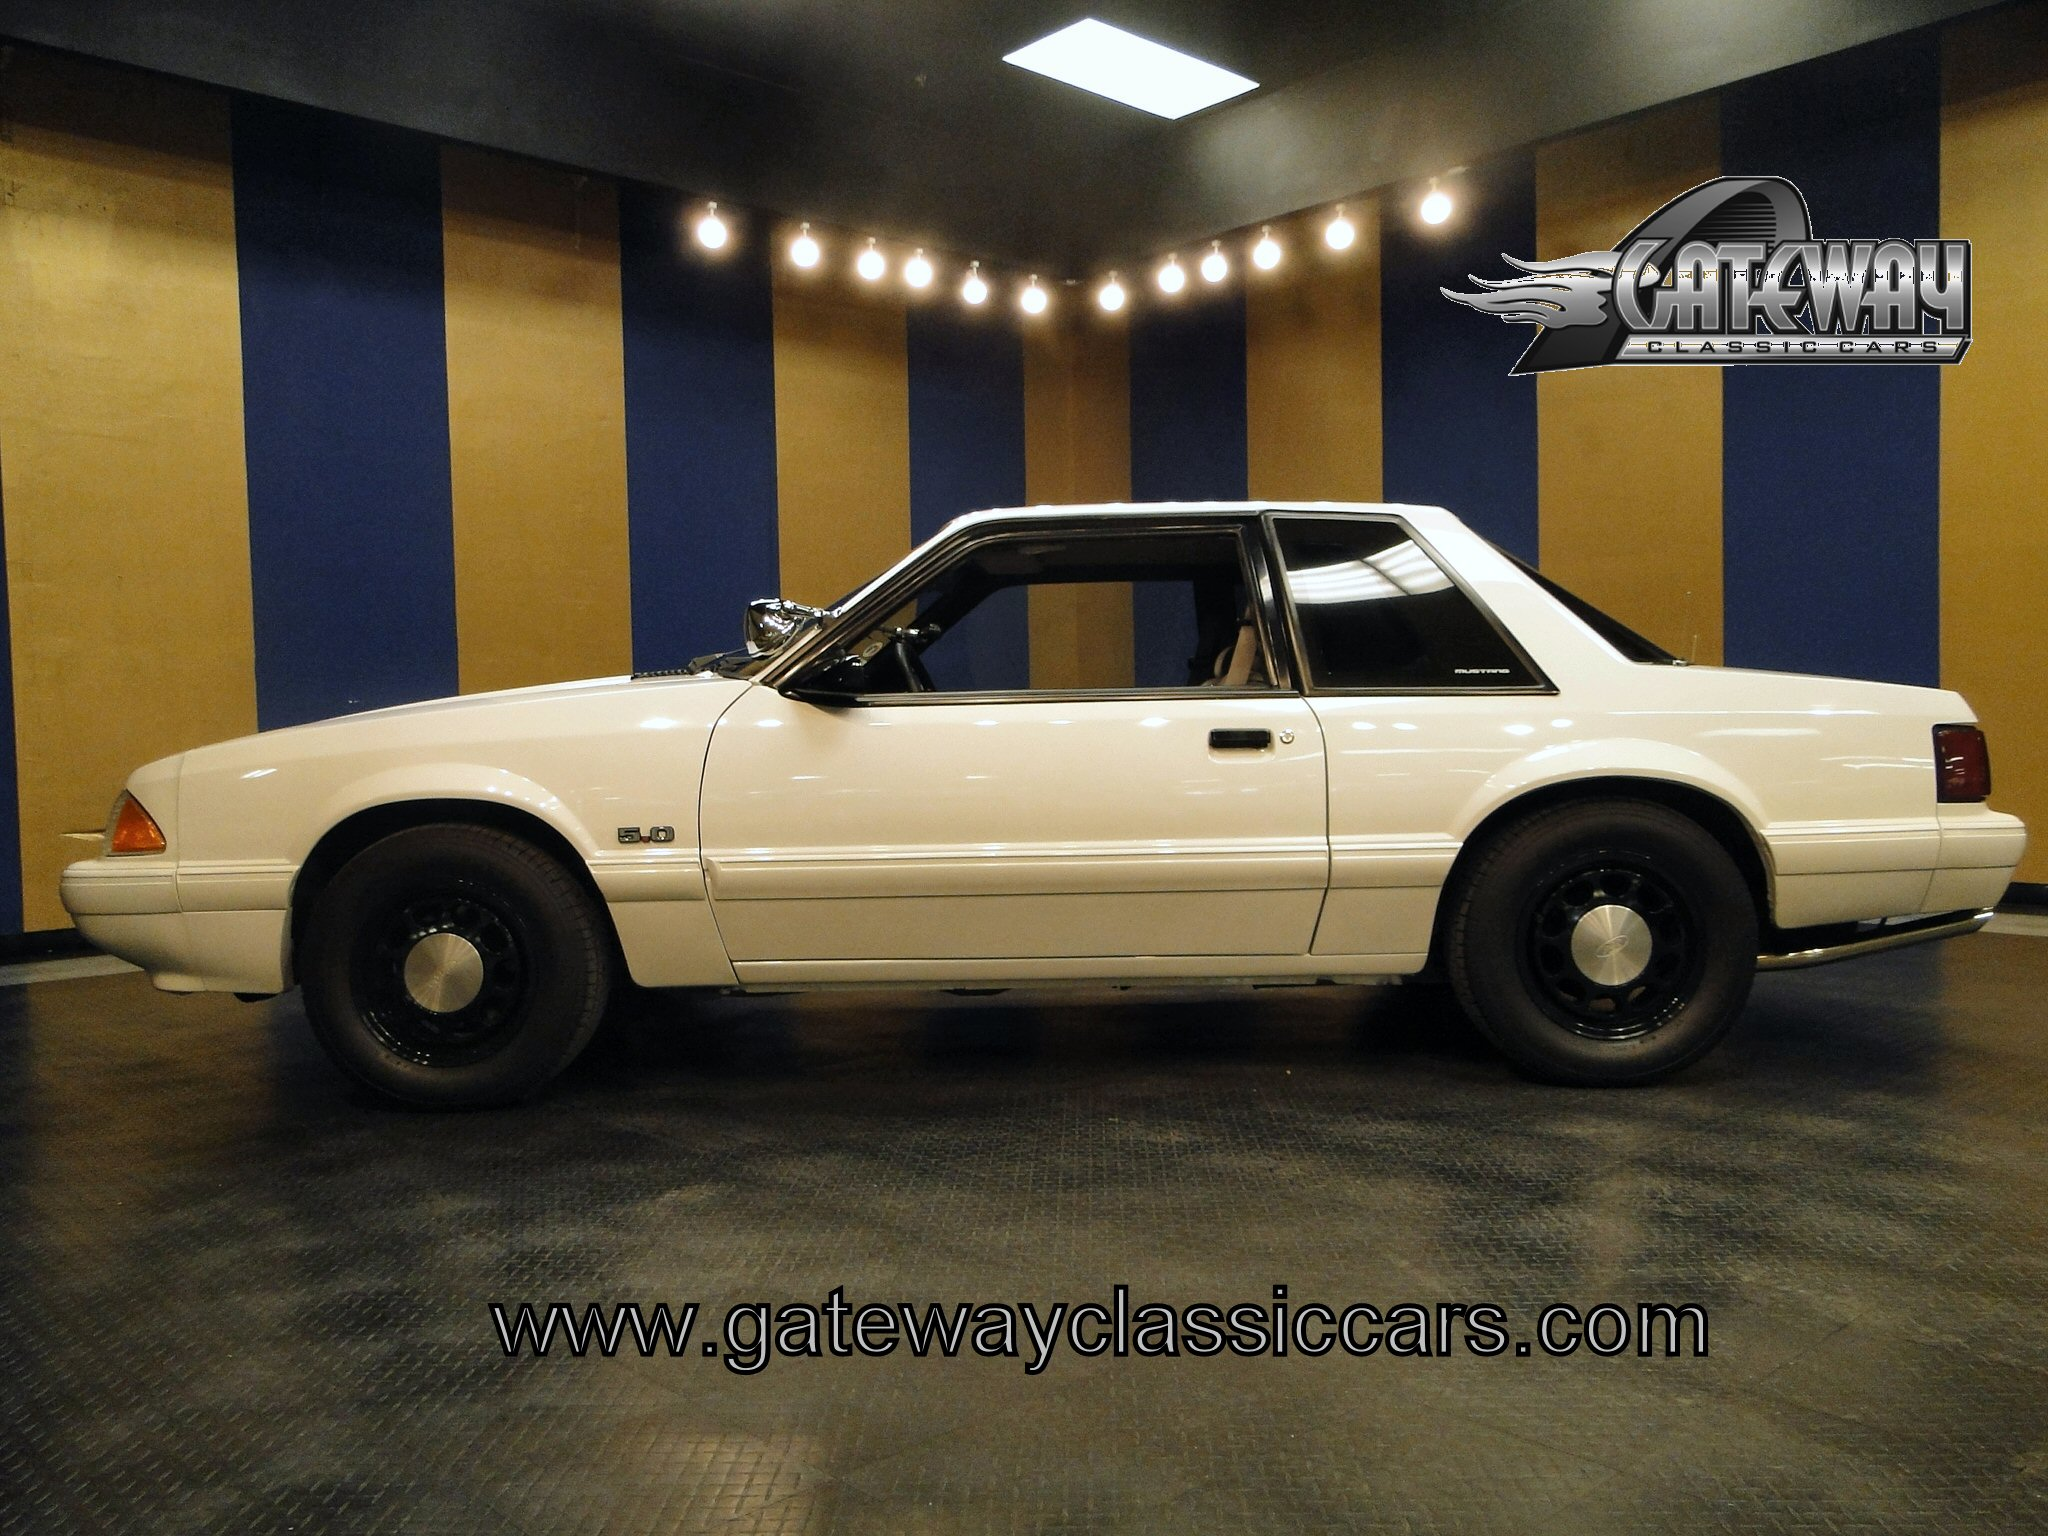 1992 ford mustang lx gateway classic cars 5115 stl